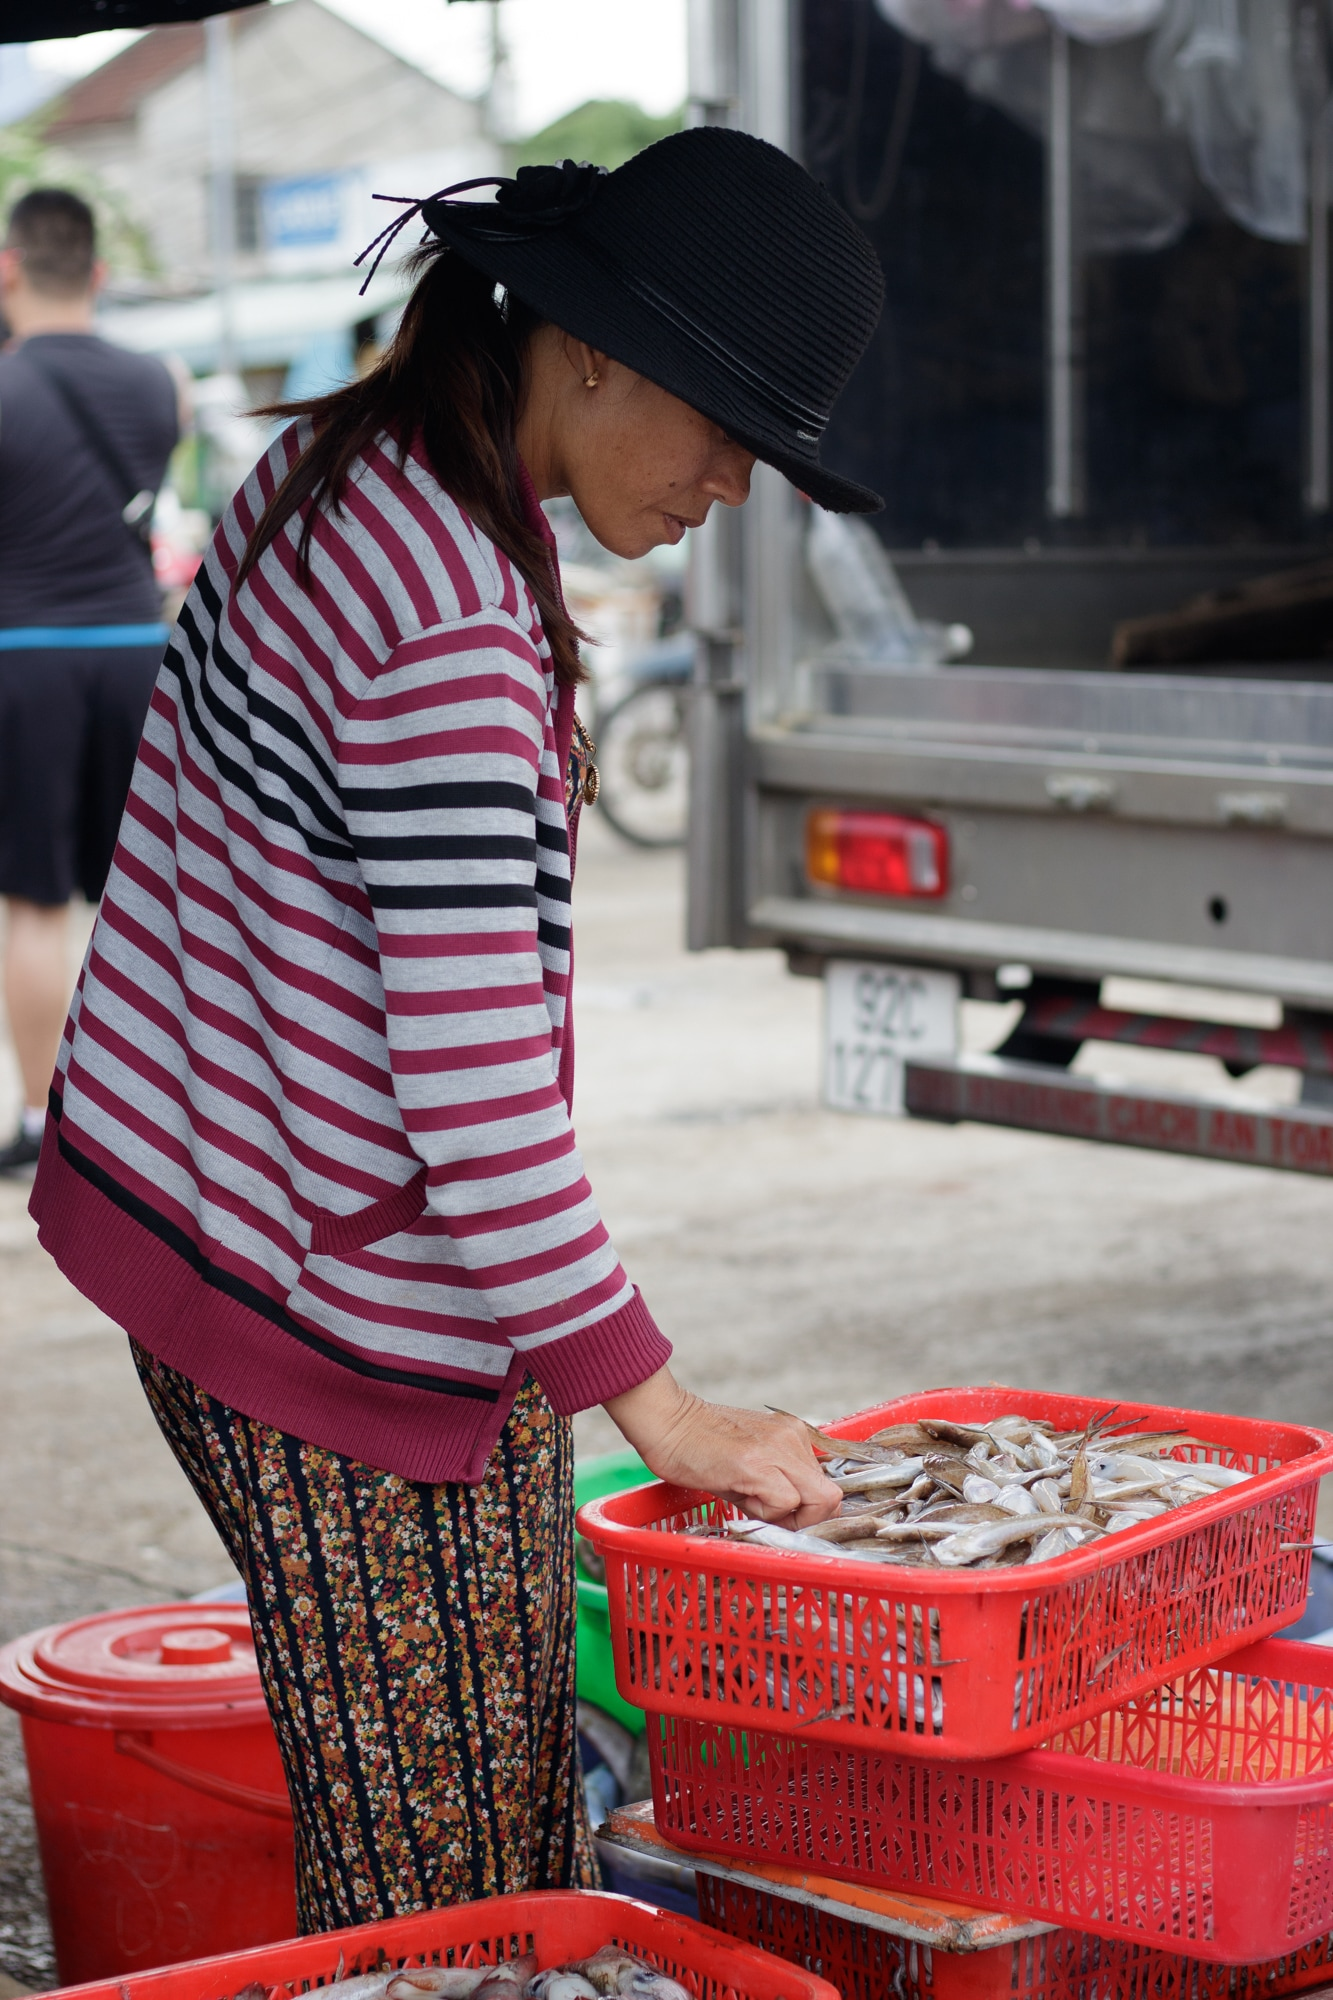 A fish seller inspects fish stock in Hoi An, Vietnam.